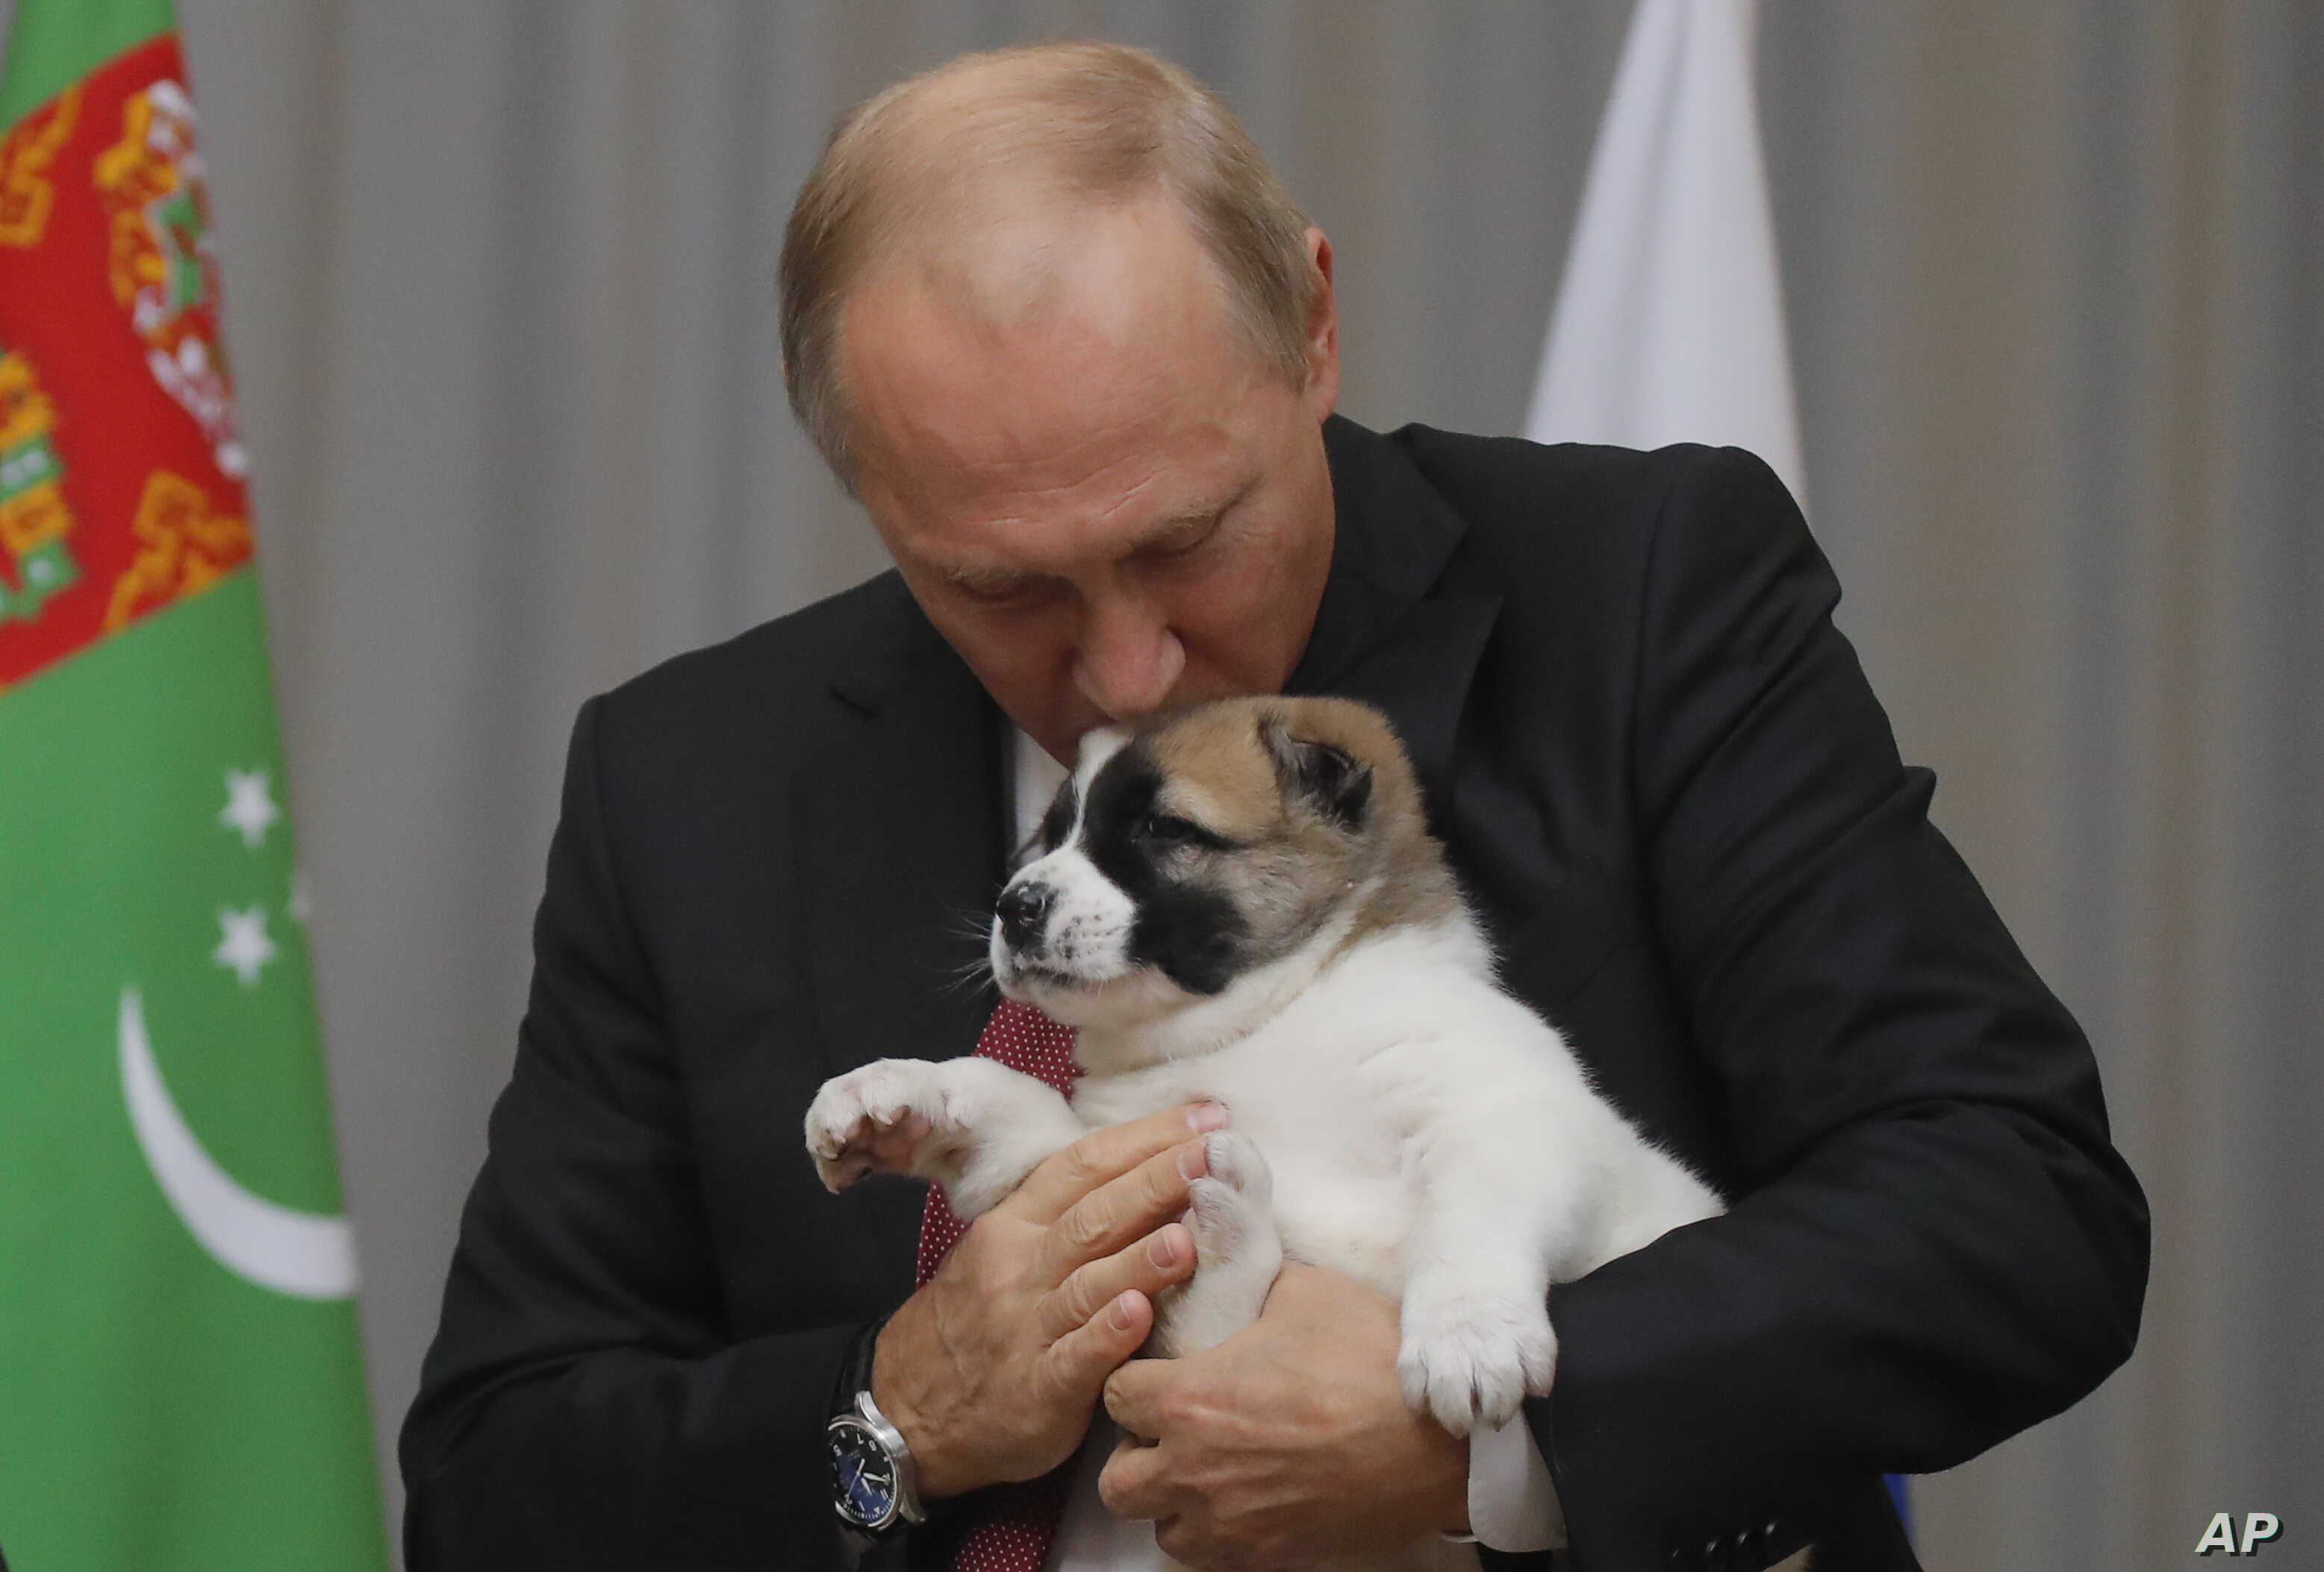 Russian President Vladimir Putin holds a puppy presented to him by Turkmenistan's President Gurbanguly Berdymukhamedov during their meeting in the Bocharov Ruchei residence in the Black Sea resort of Sochi, Russia, Oct. 11, 2017.